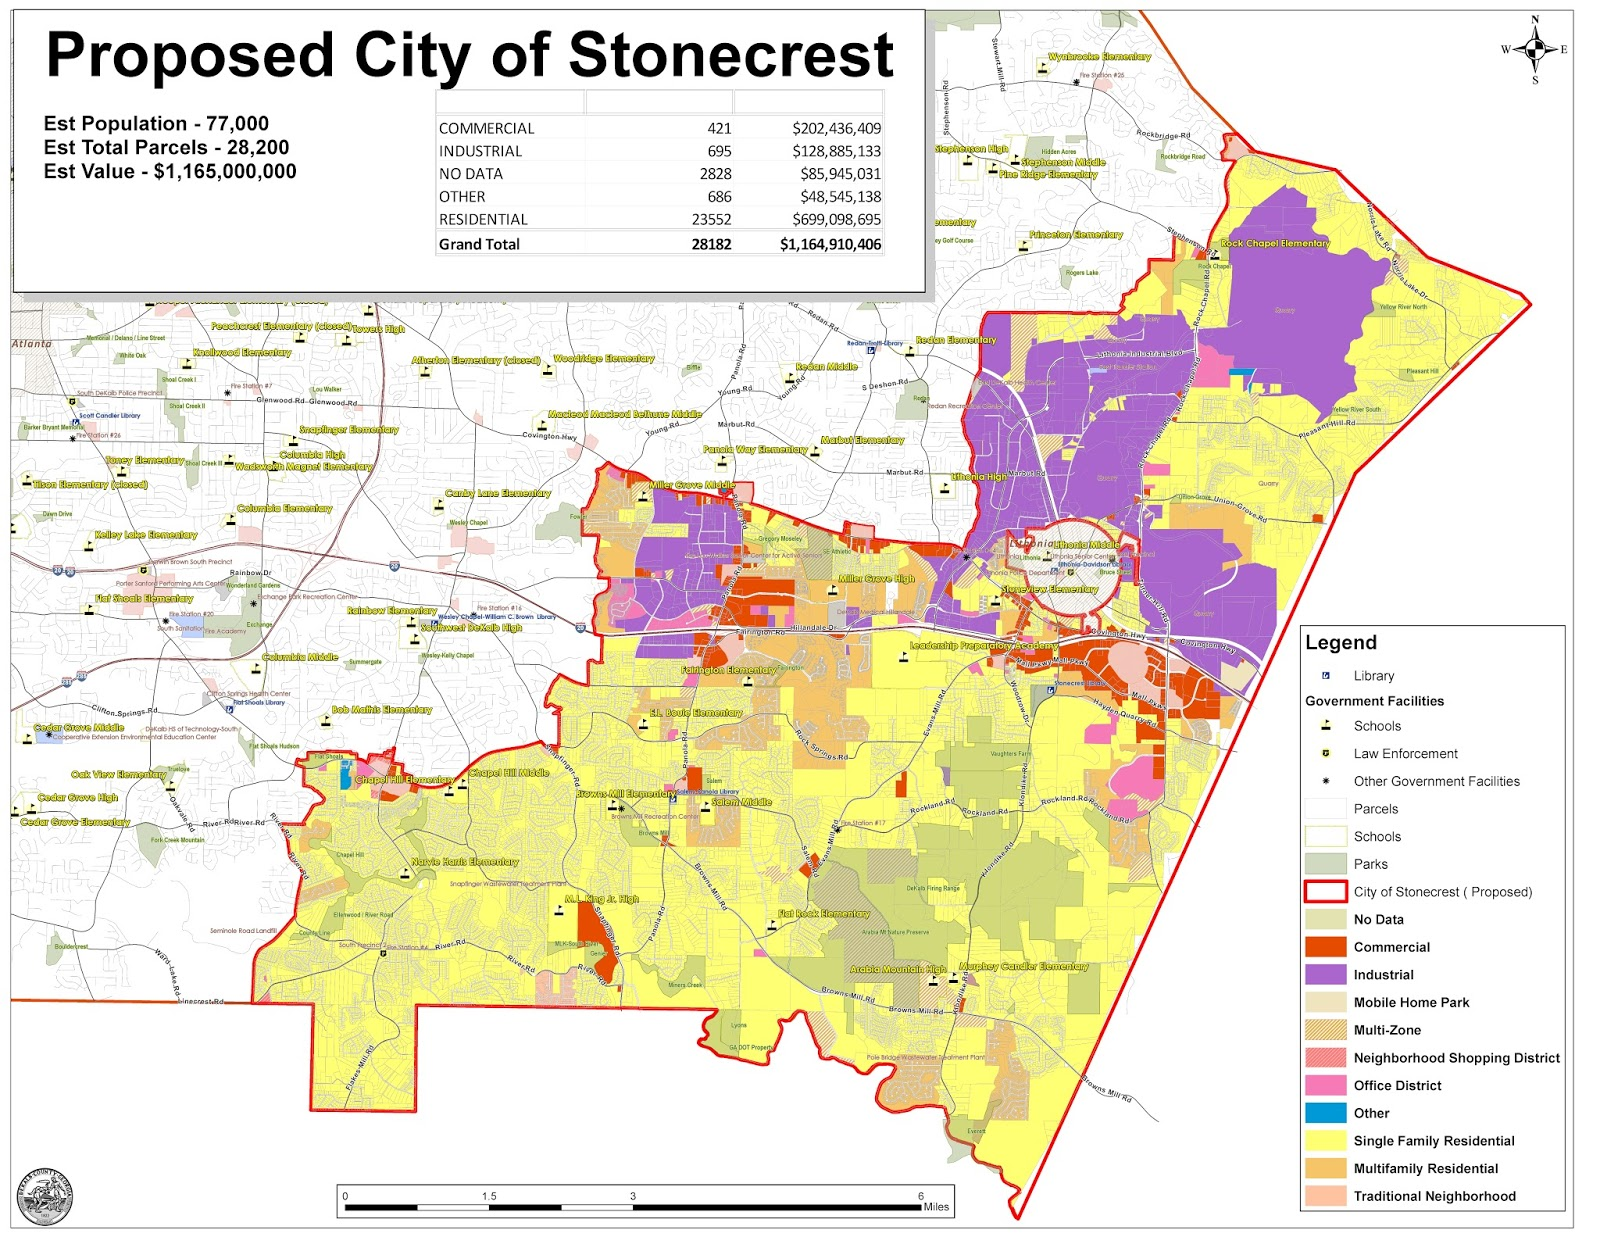 fulton county s map with Stonecrest Update on Overview moreover Index besides Kentucky County Map also AtlantaStadium in addition 37 Country Club Of The South.